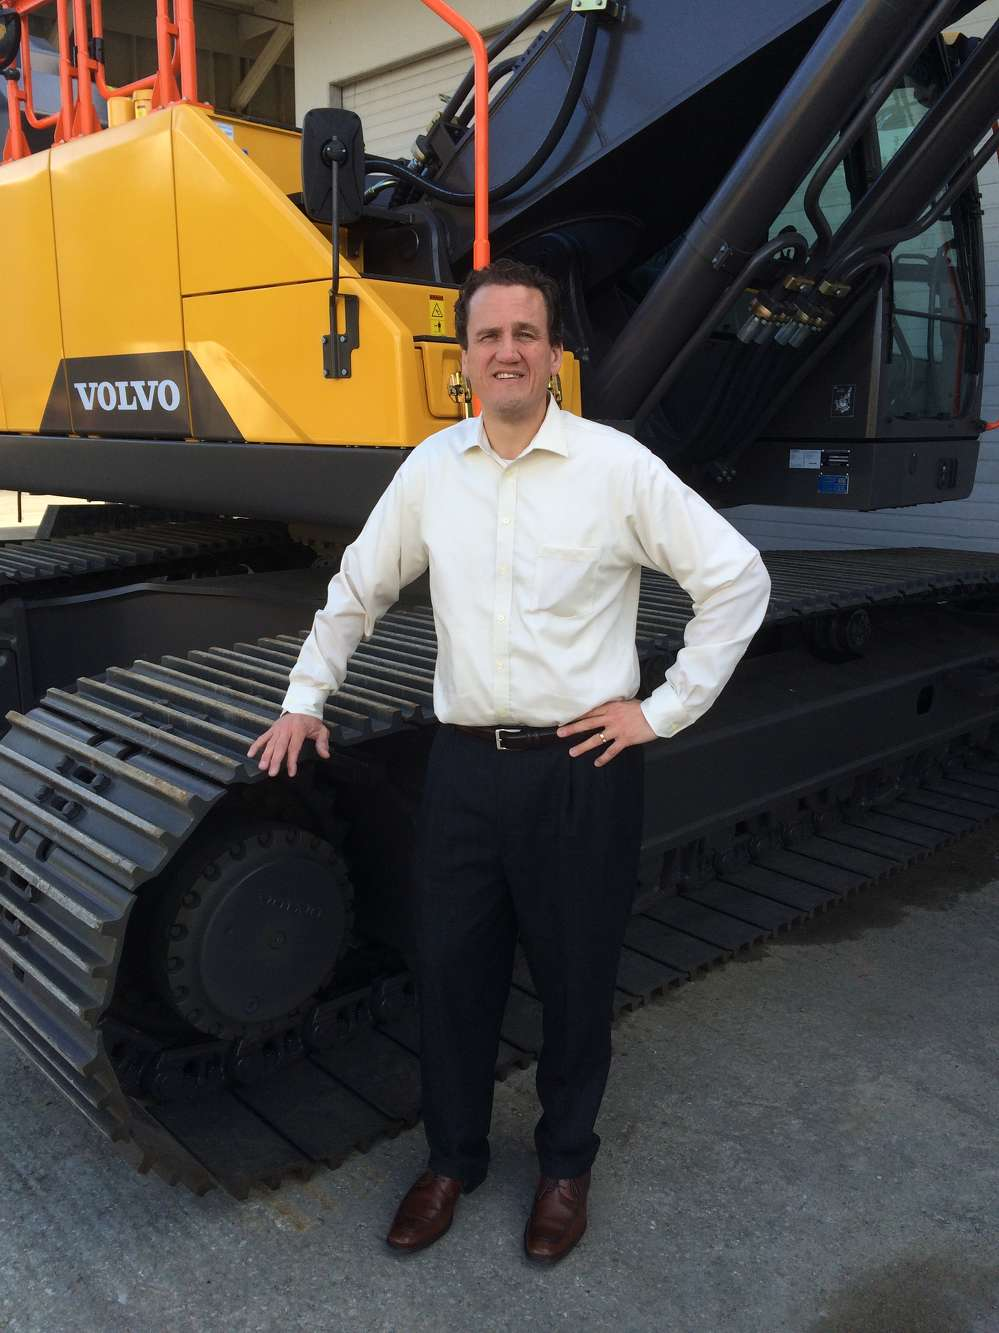 Tim Hurst has joined PacWest Machinery based in its Portland, Ore., Branch.